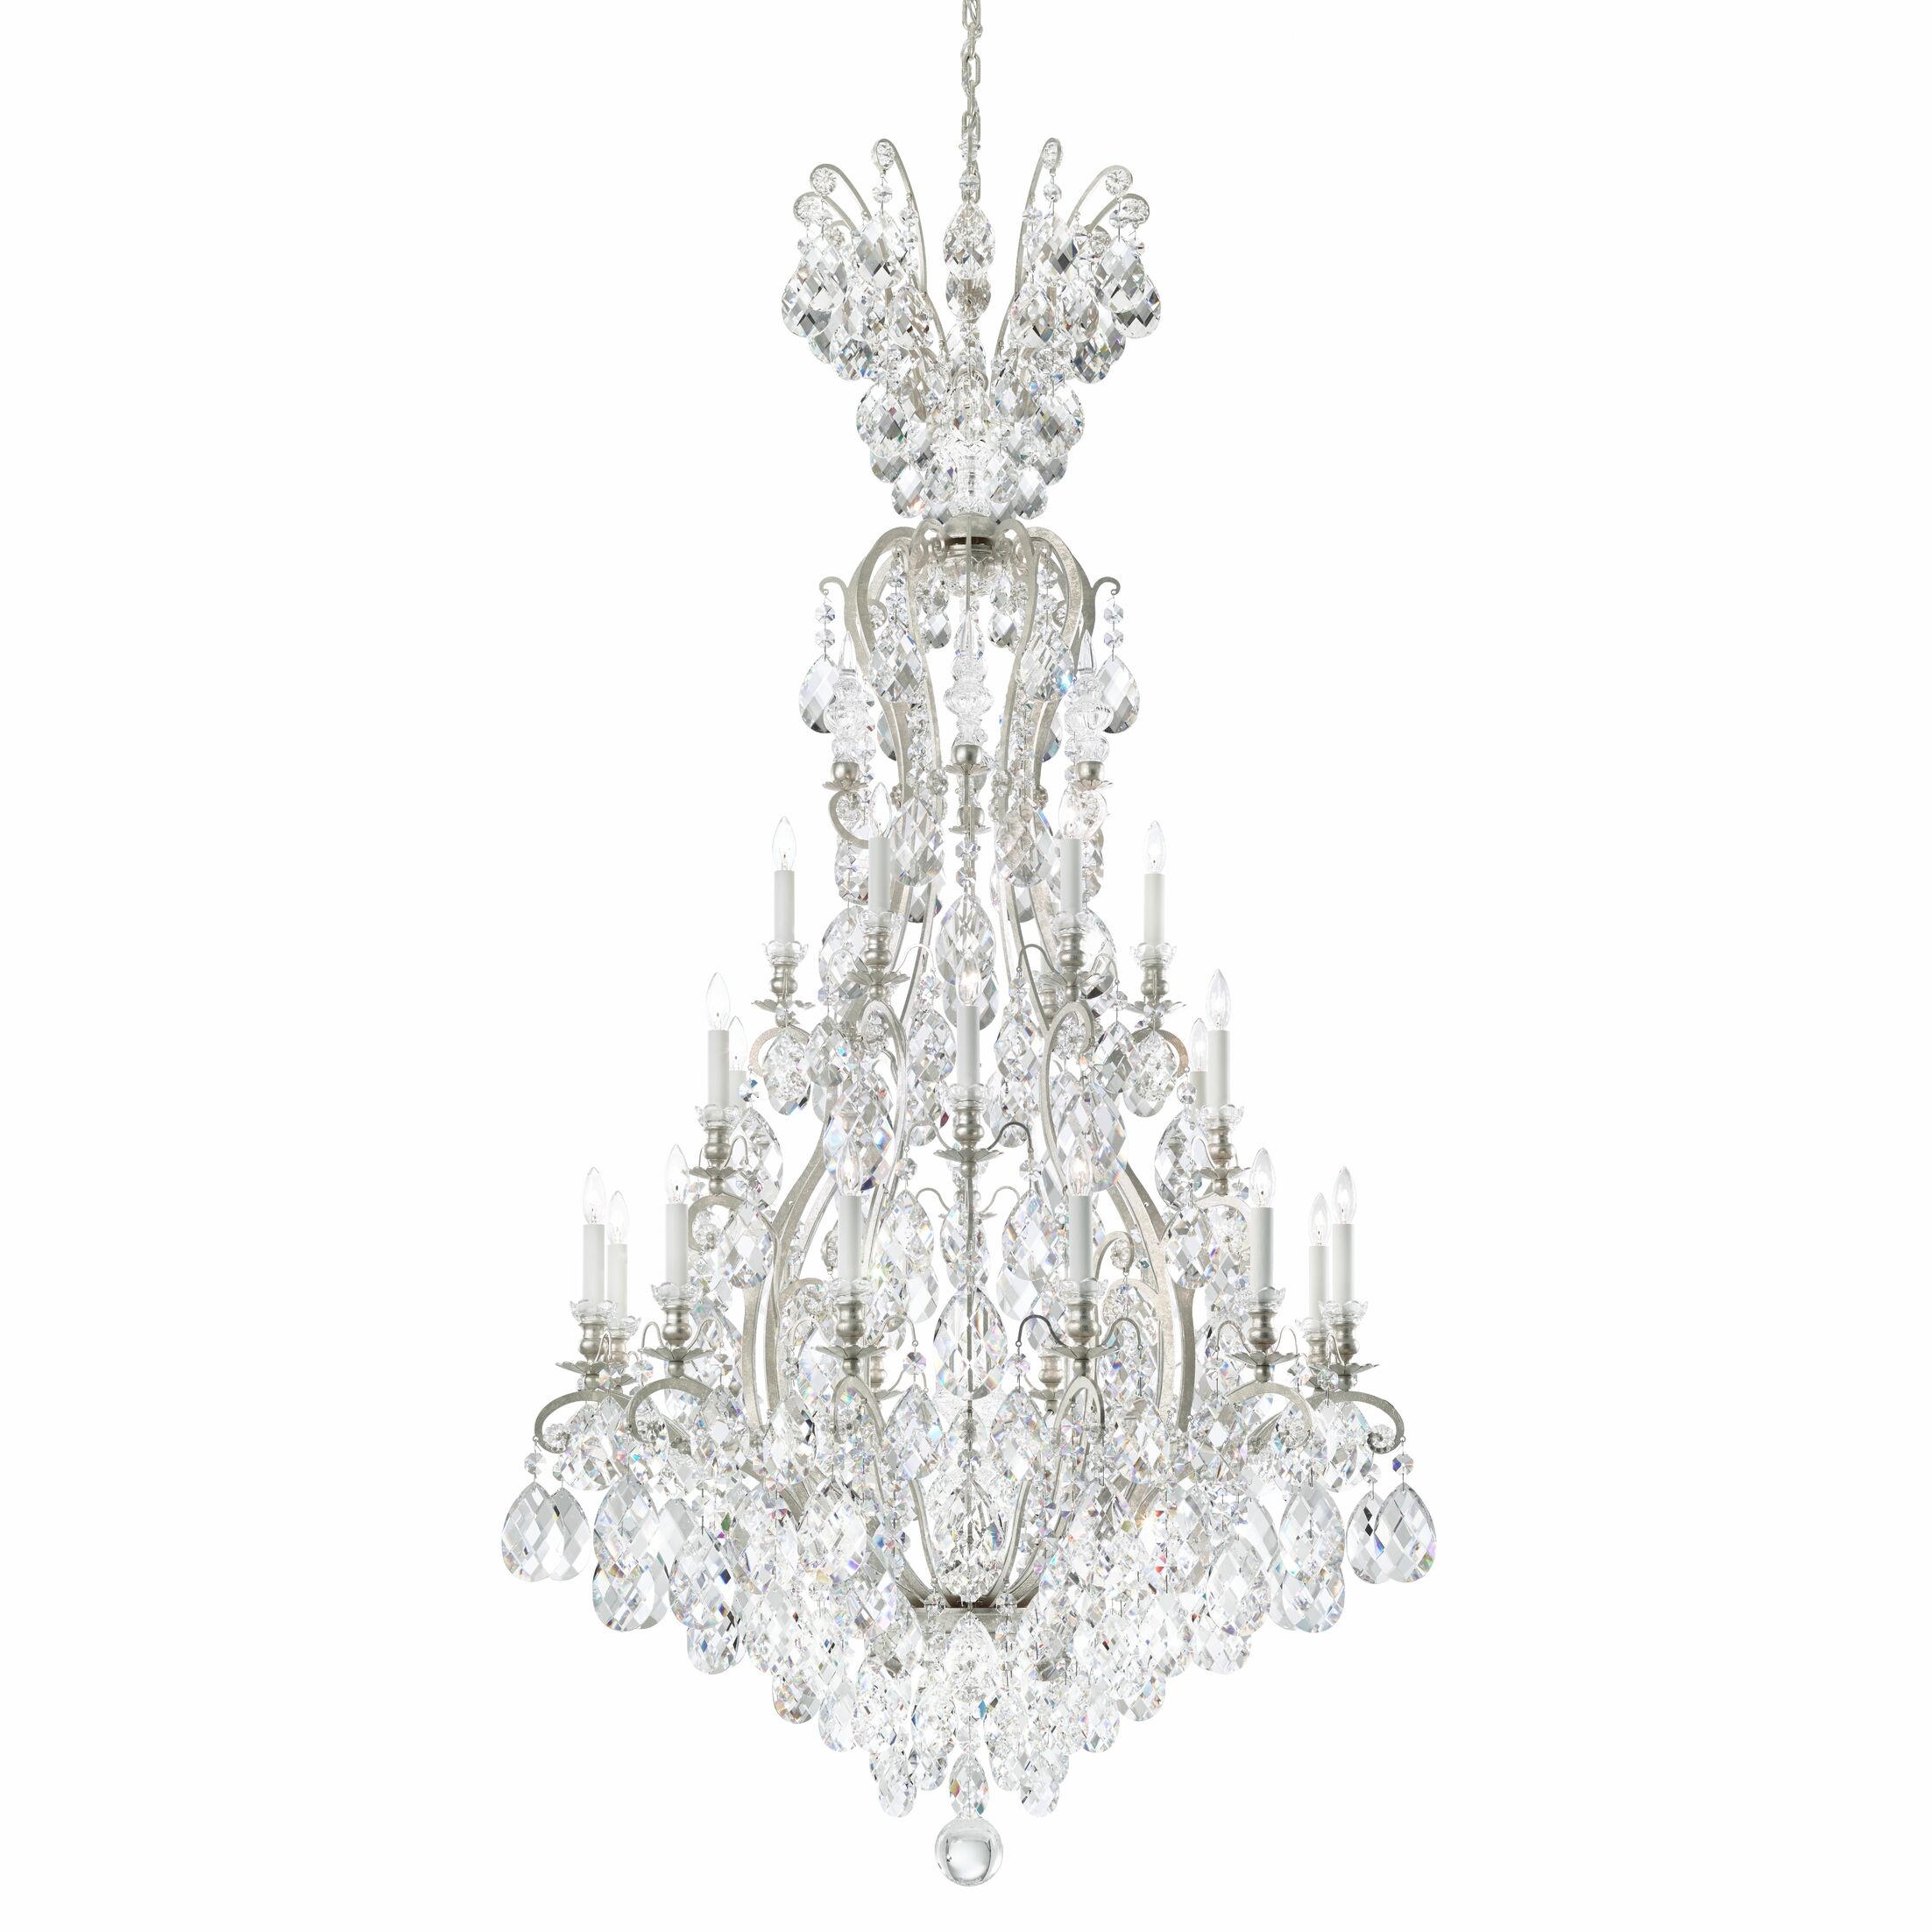 Renaissance 24-Light Candle Style Chandelier Crystal Grade: Clear from Swarovski, Finish: Black